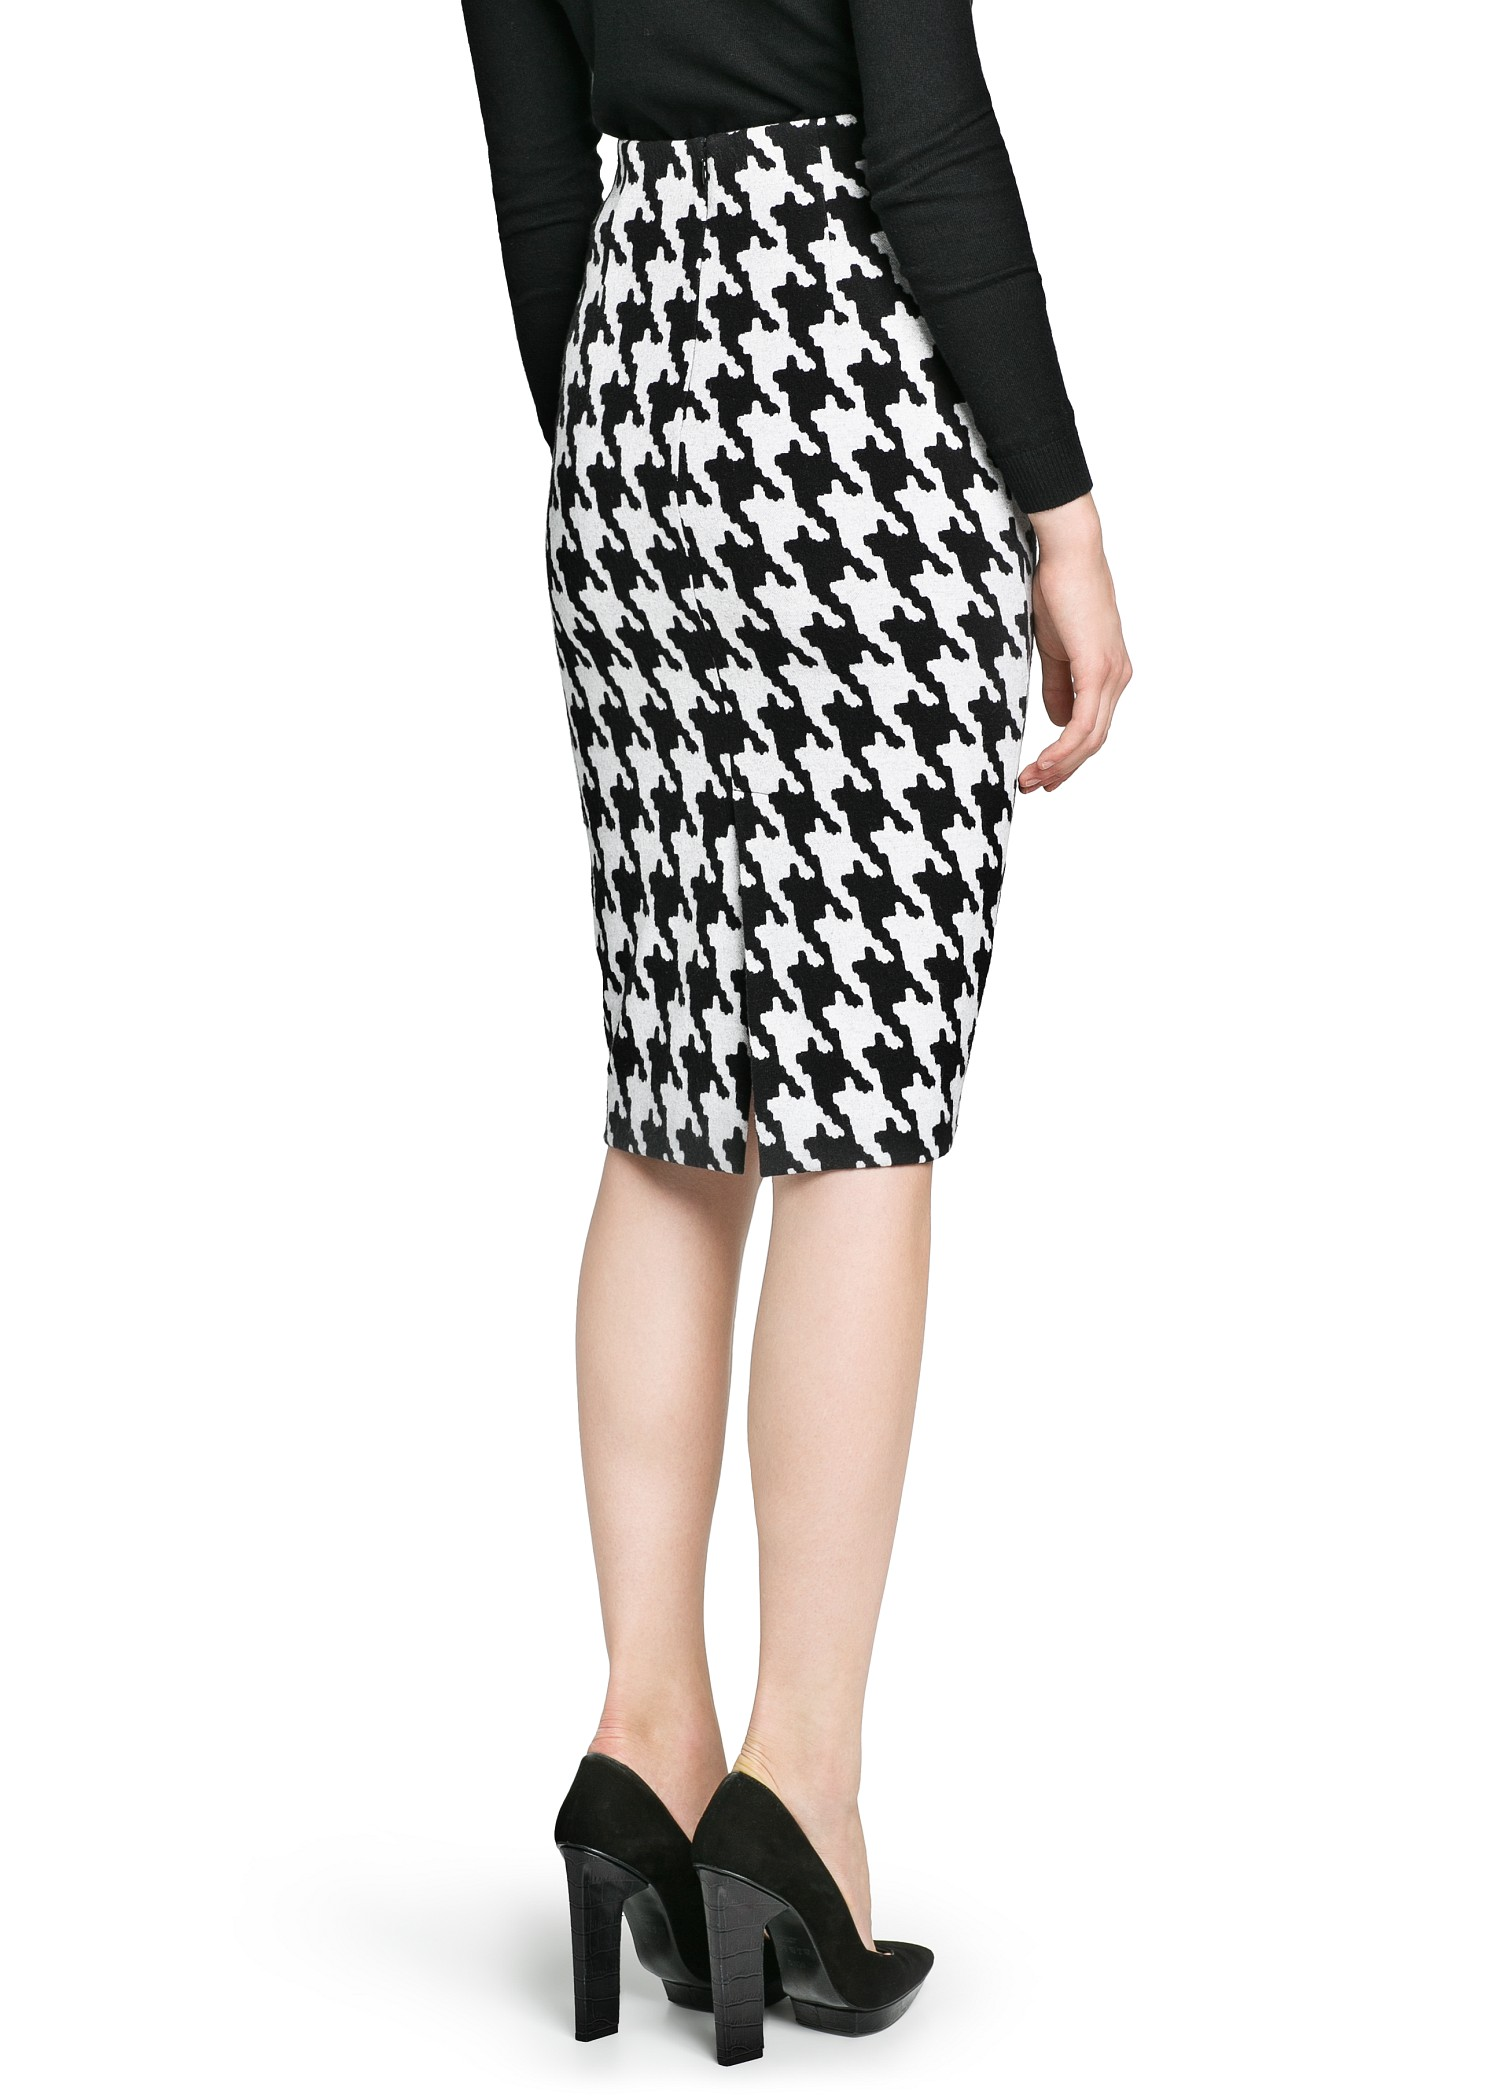 Mango Houndstooth Pencil Skirt in White | Lyst